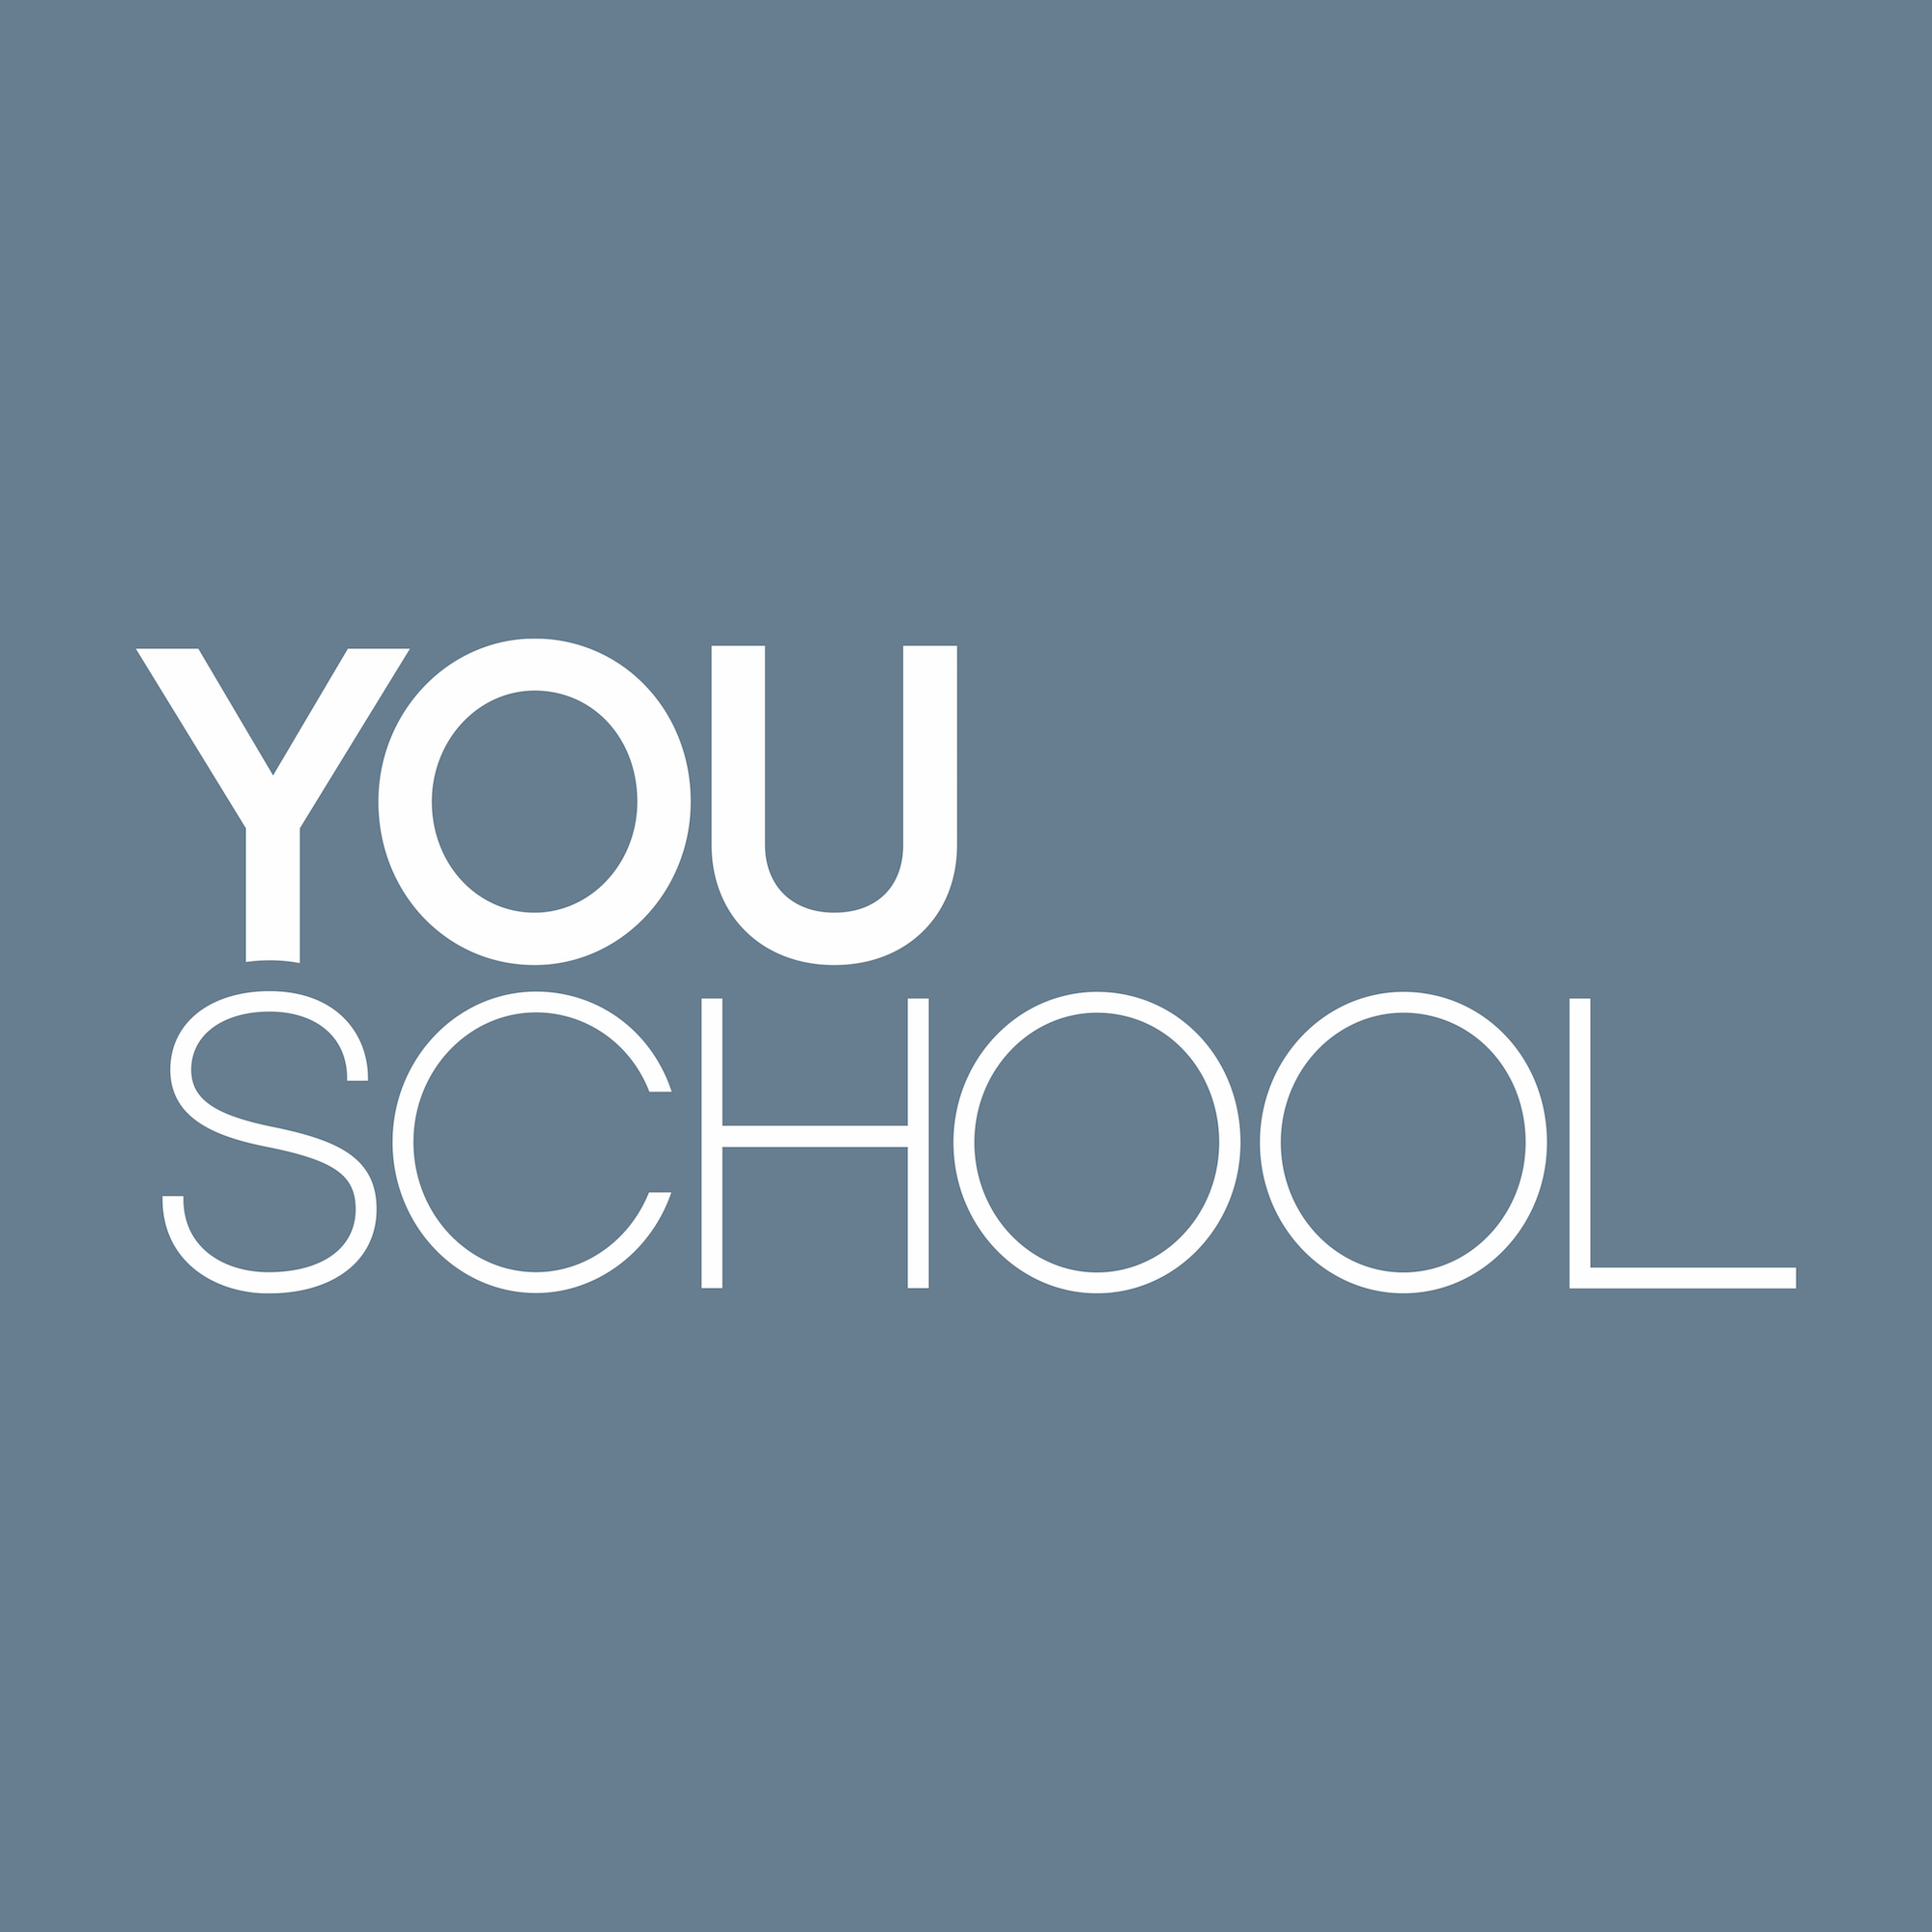 The YouSchool Podcast